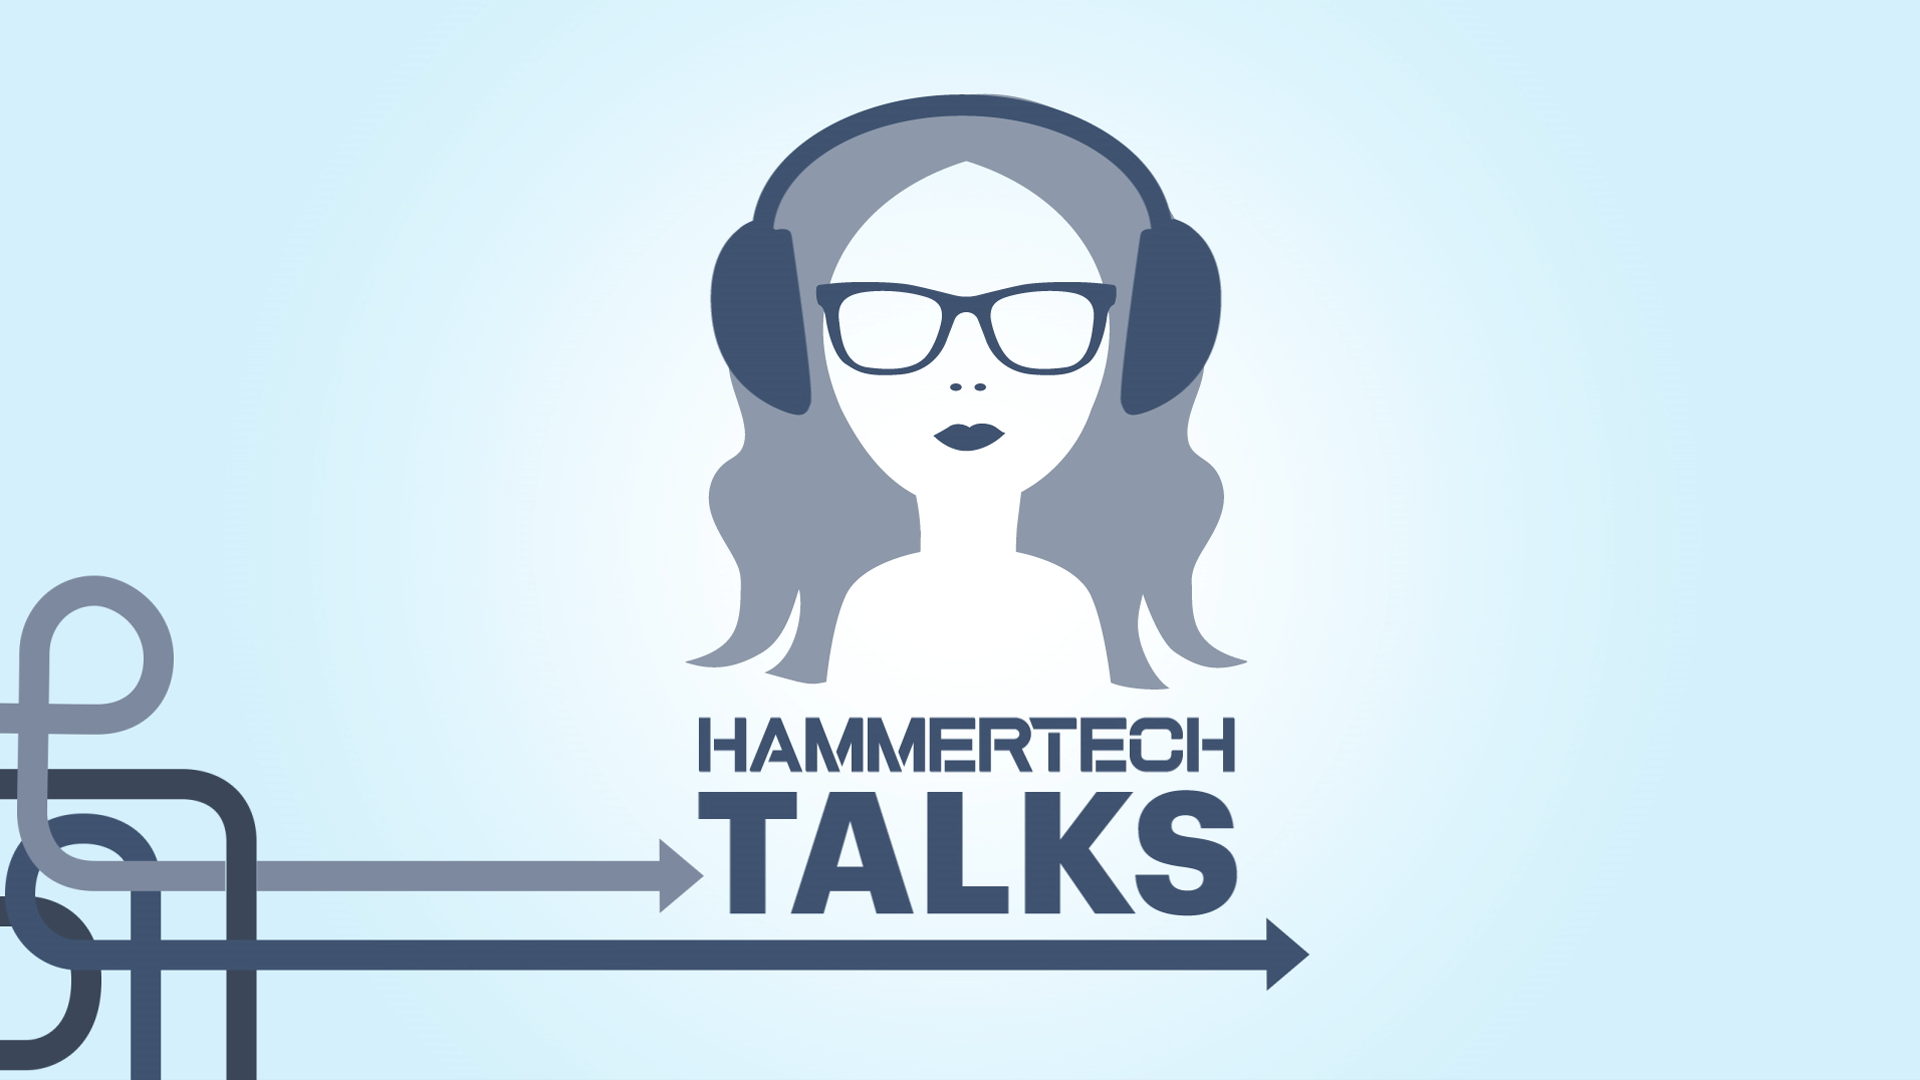 HammerTech Talks with Kathi Dobson, Safety Director at Alberici Constructors